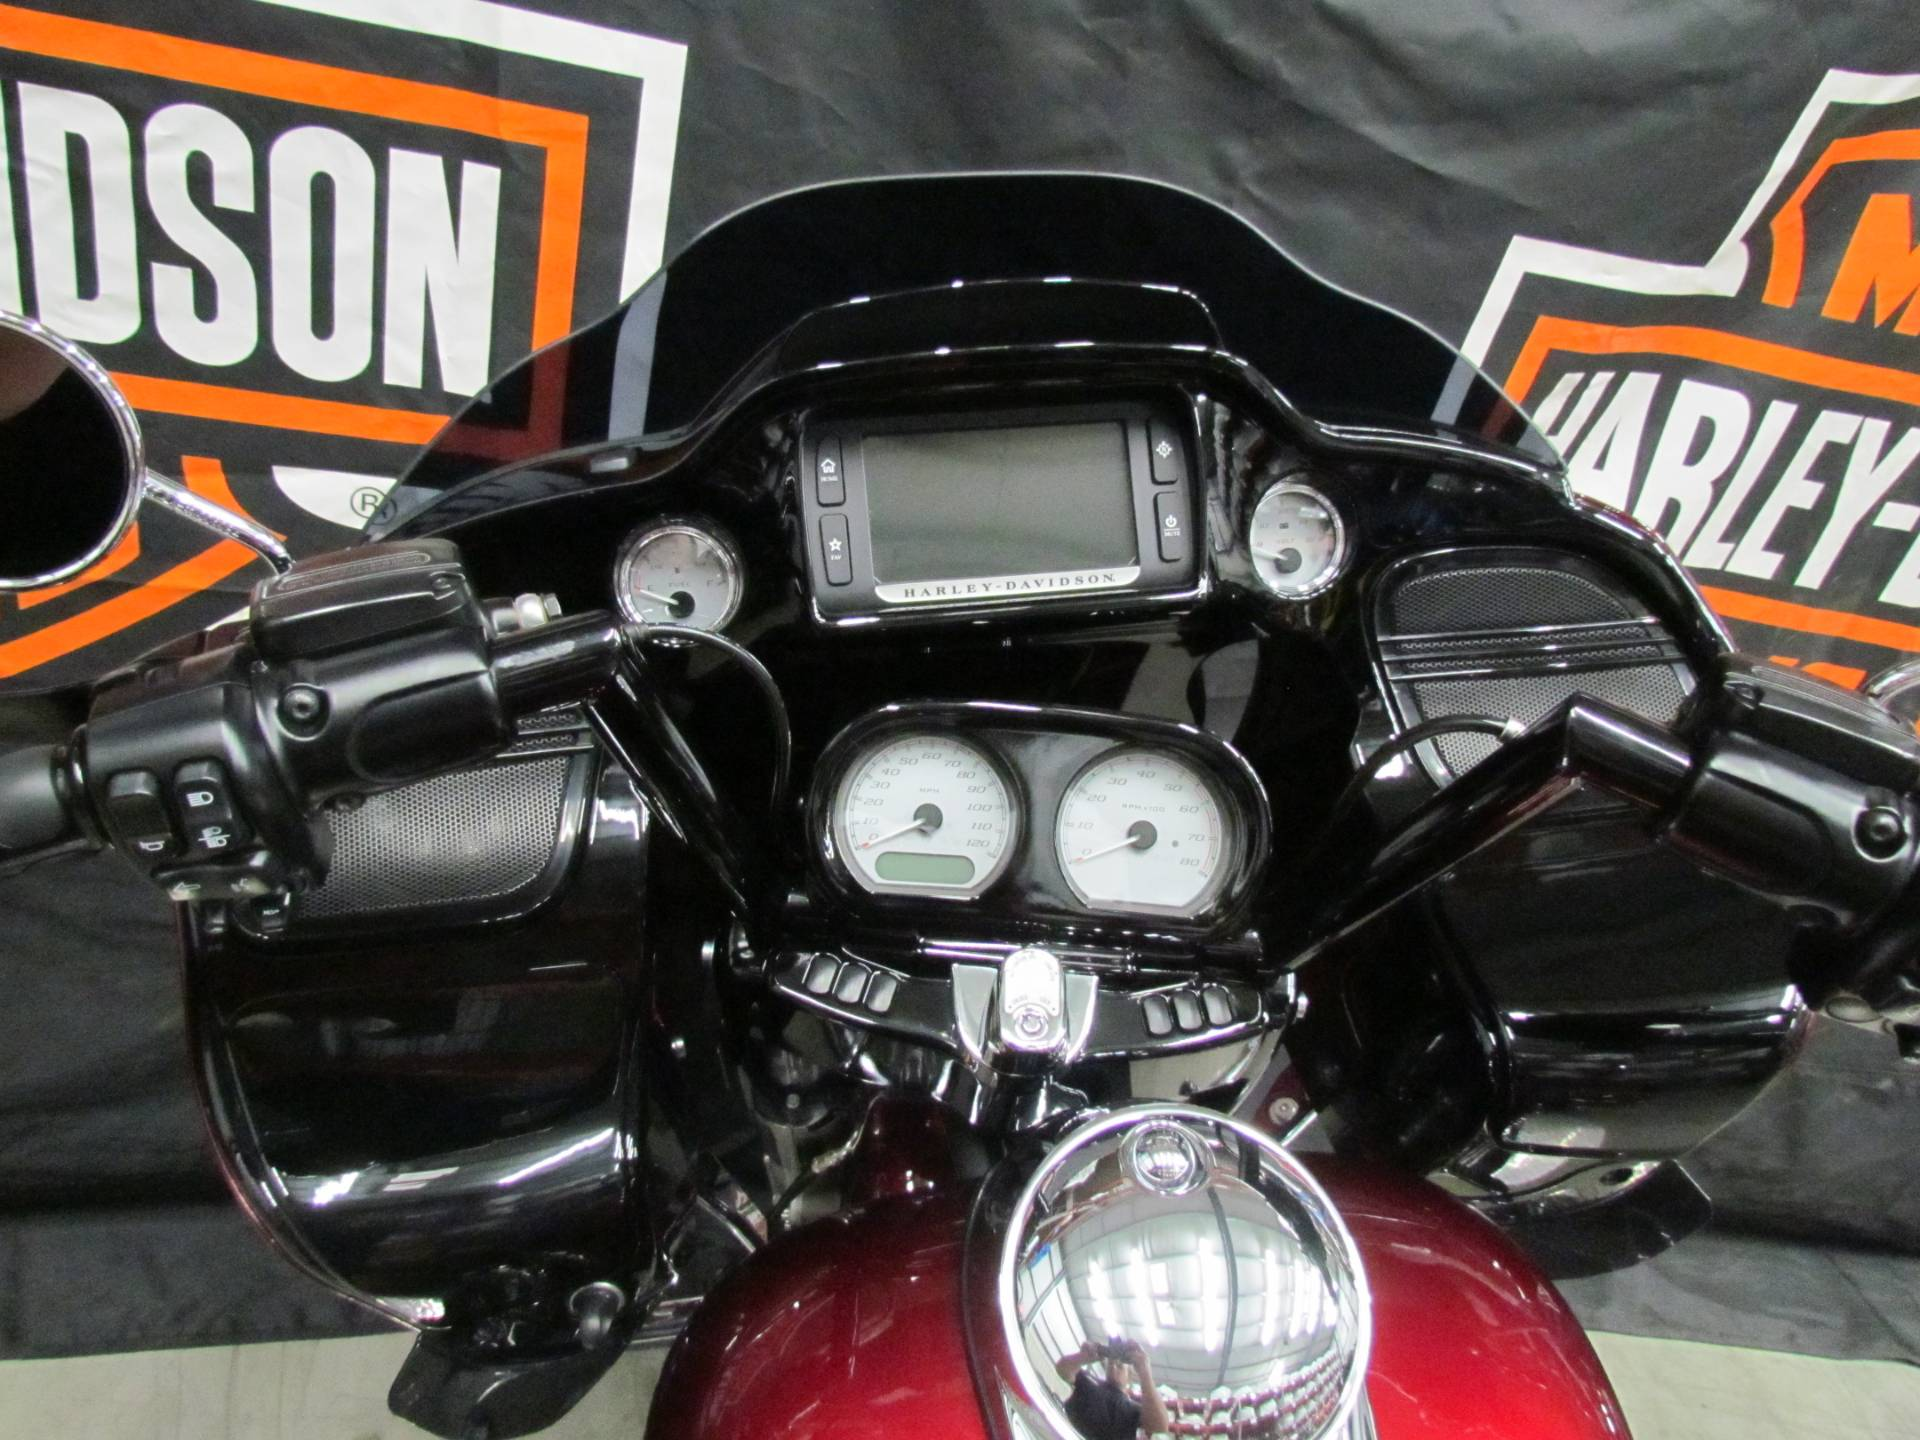 Used 2017 Harley-Davidson Road Glide® Special Motorcycles in New